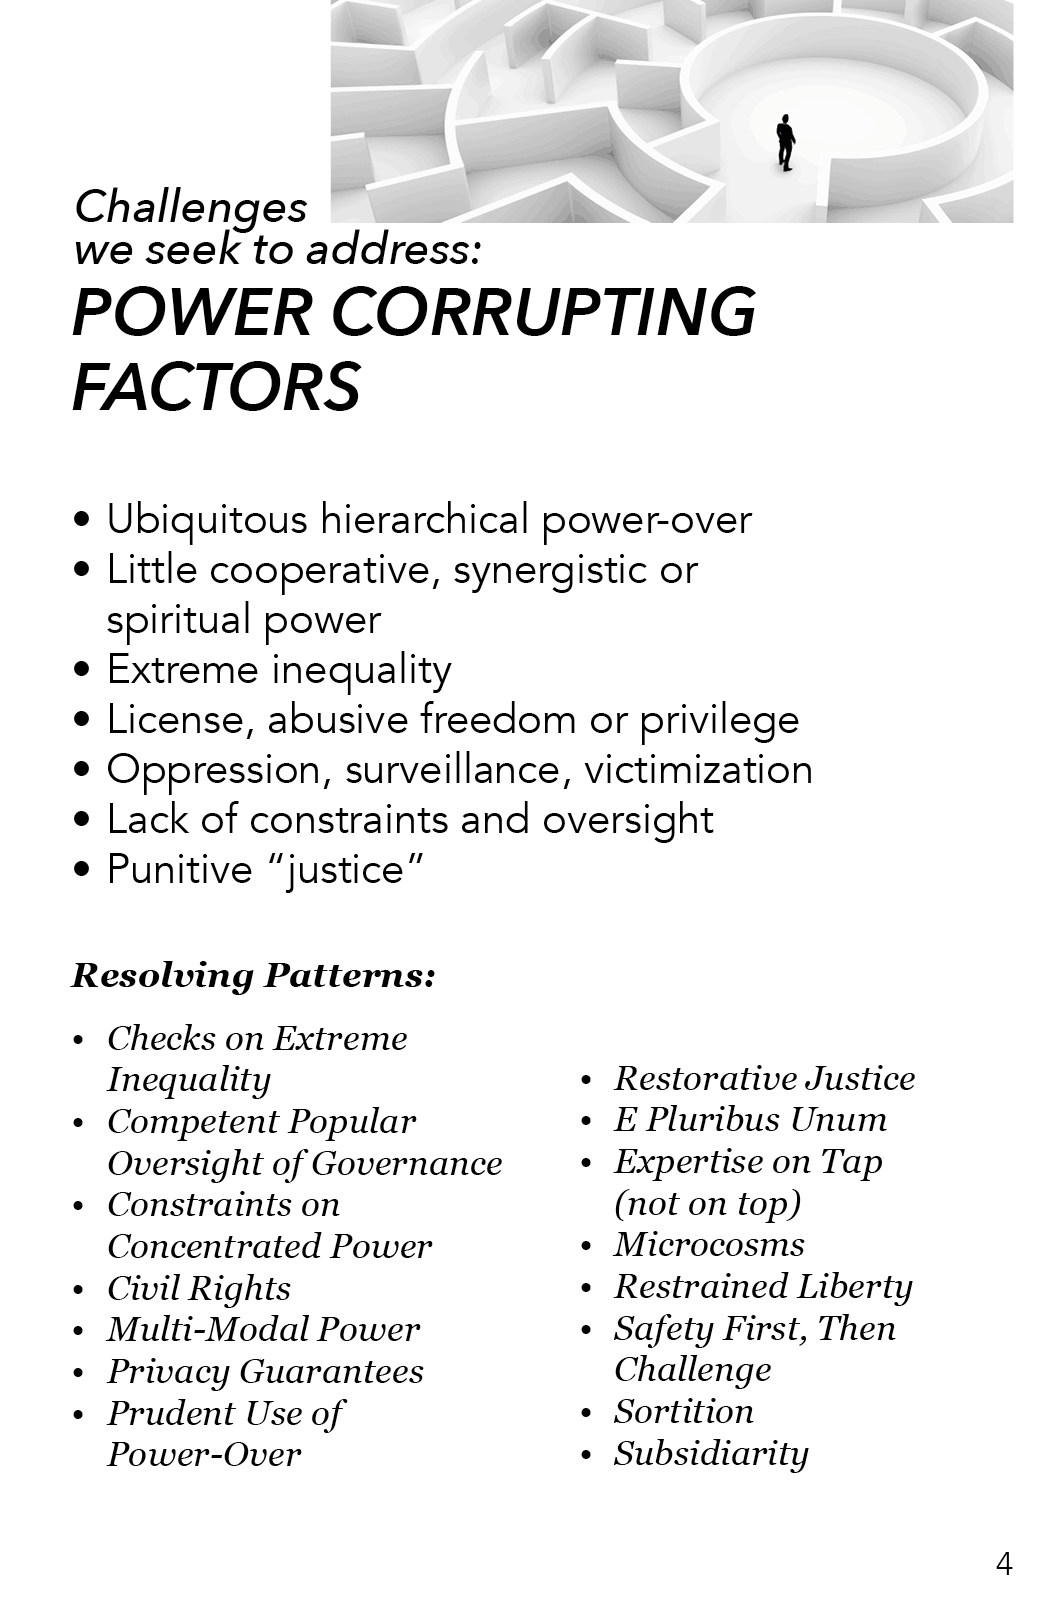 AAA - Power Corrupting Factors